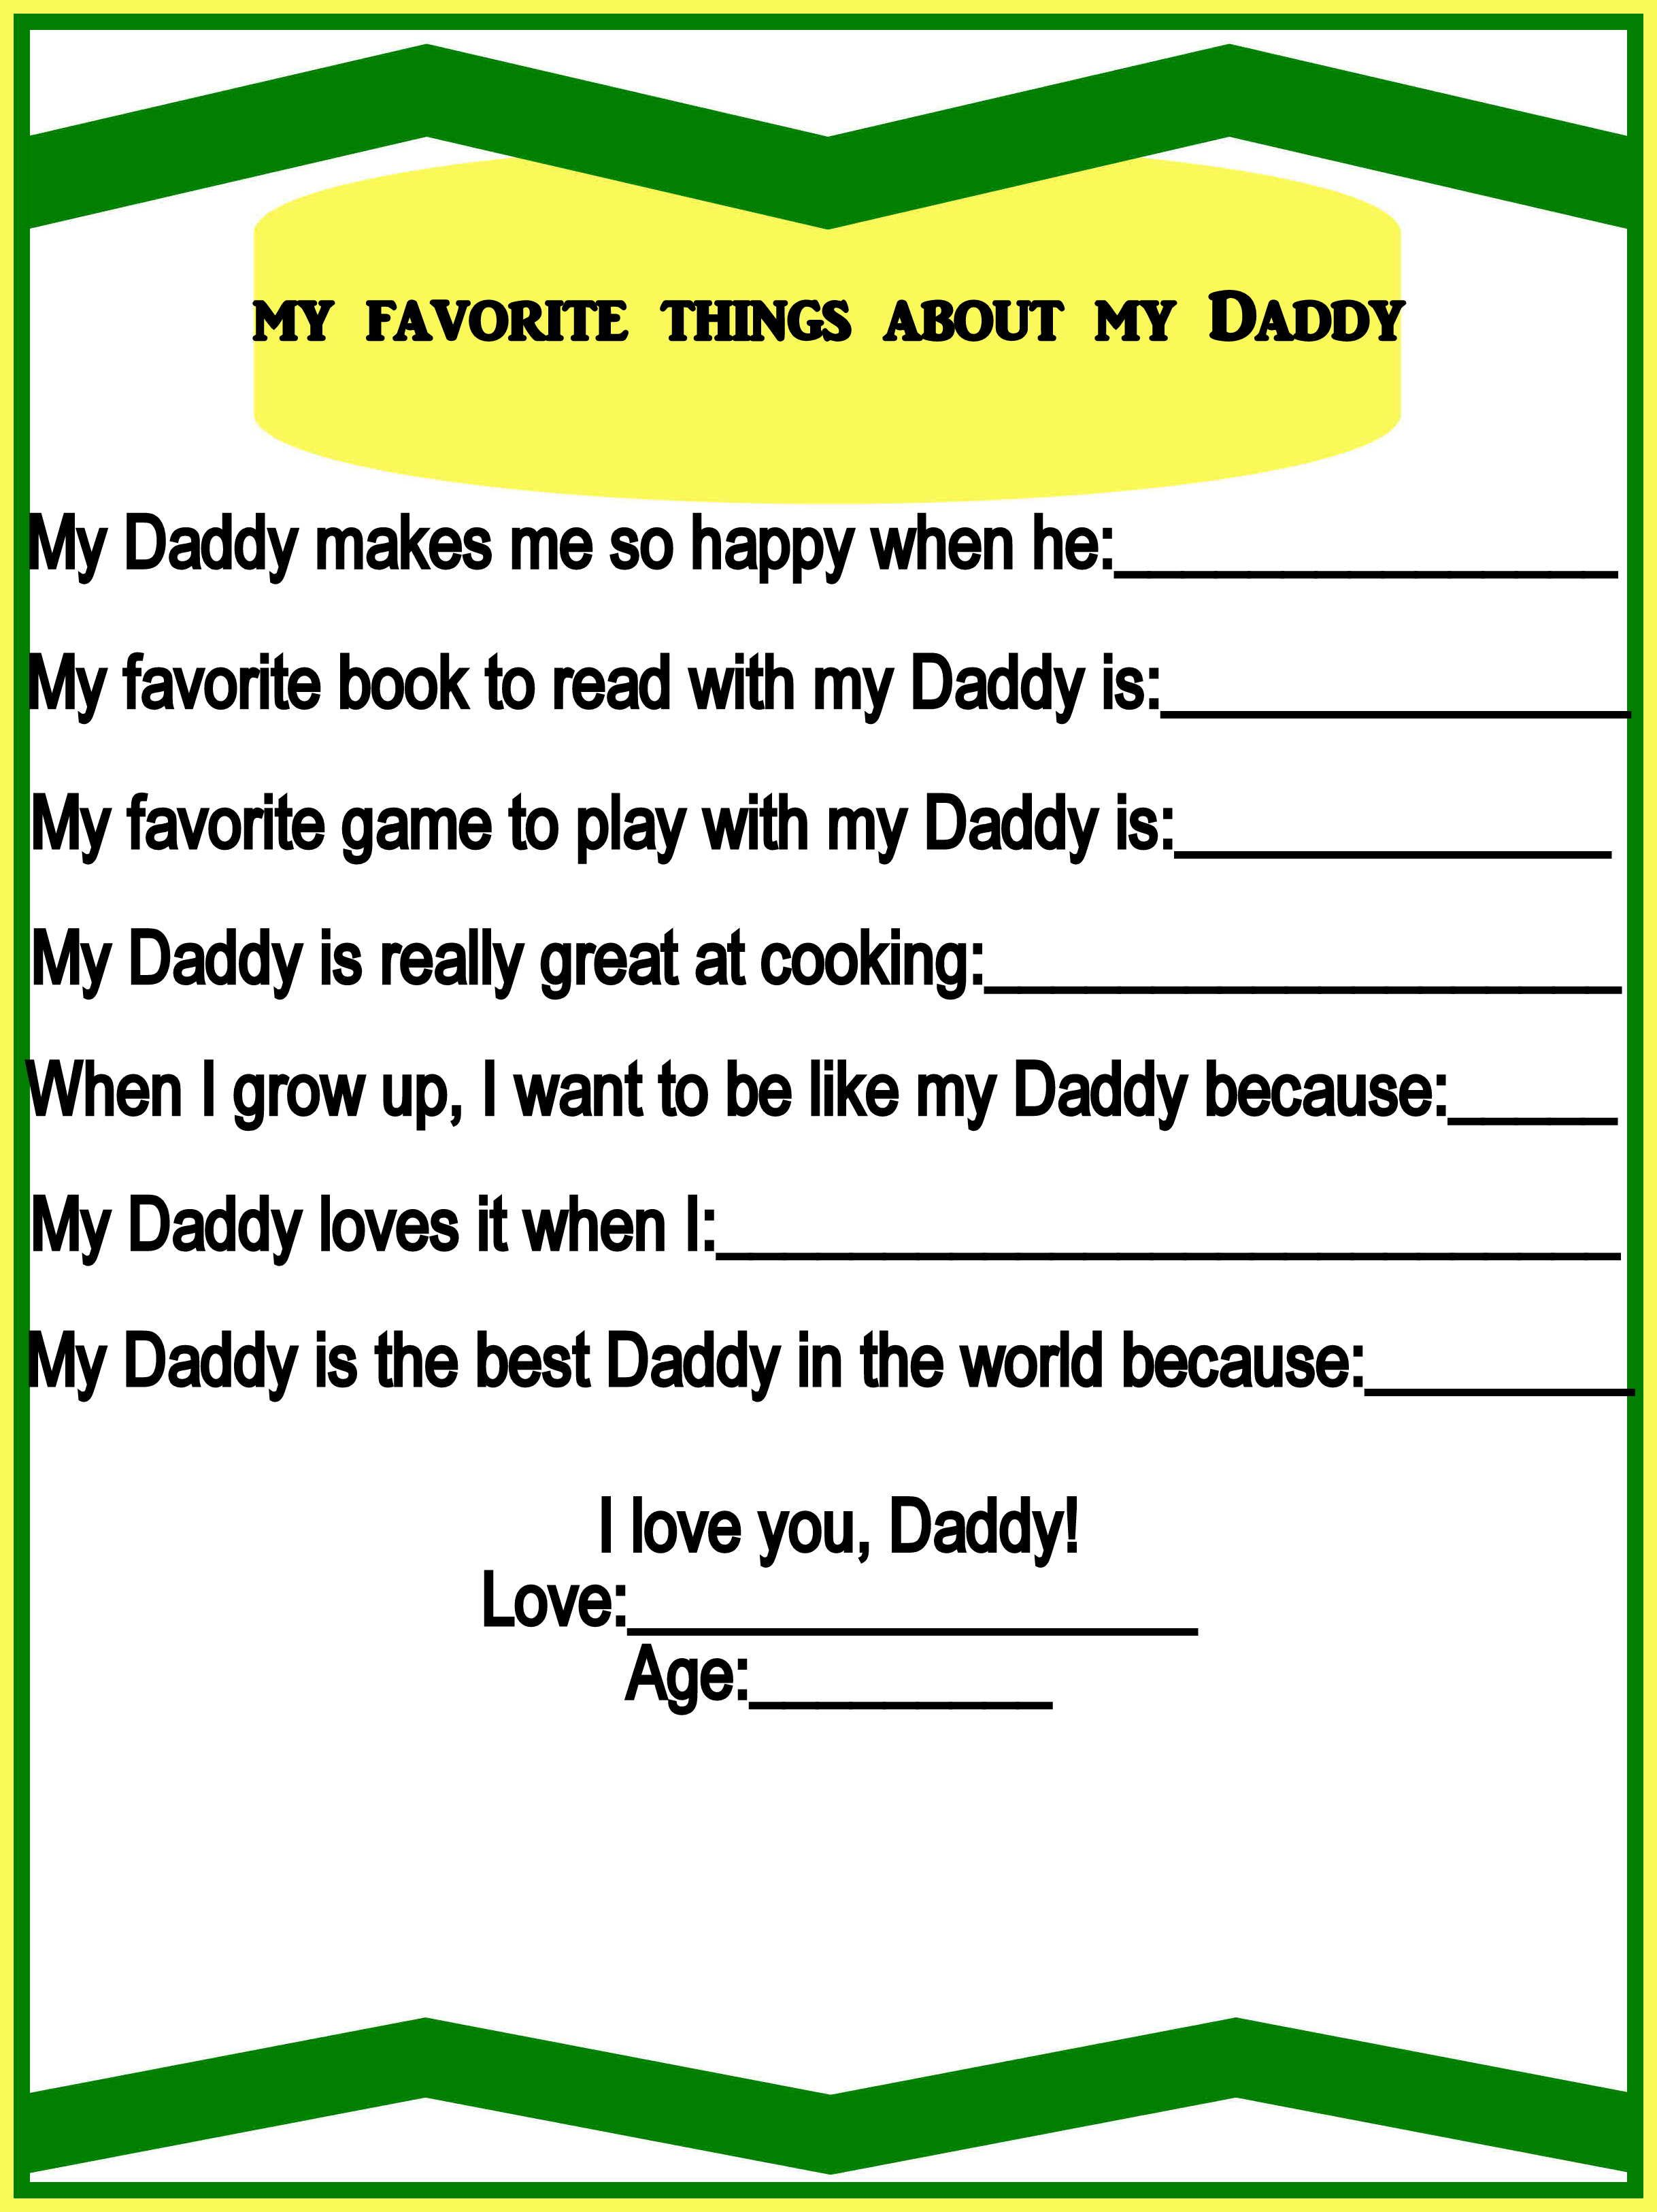 My Favorite Things About My Daddy Free Printable Too Cute